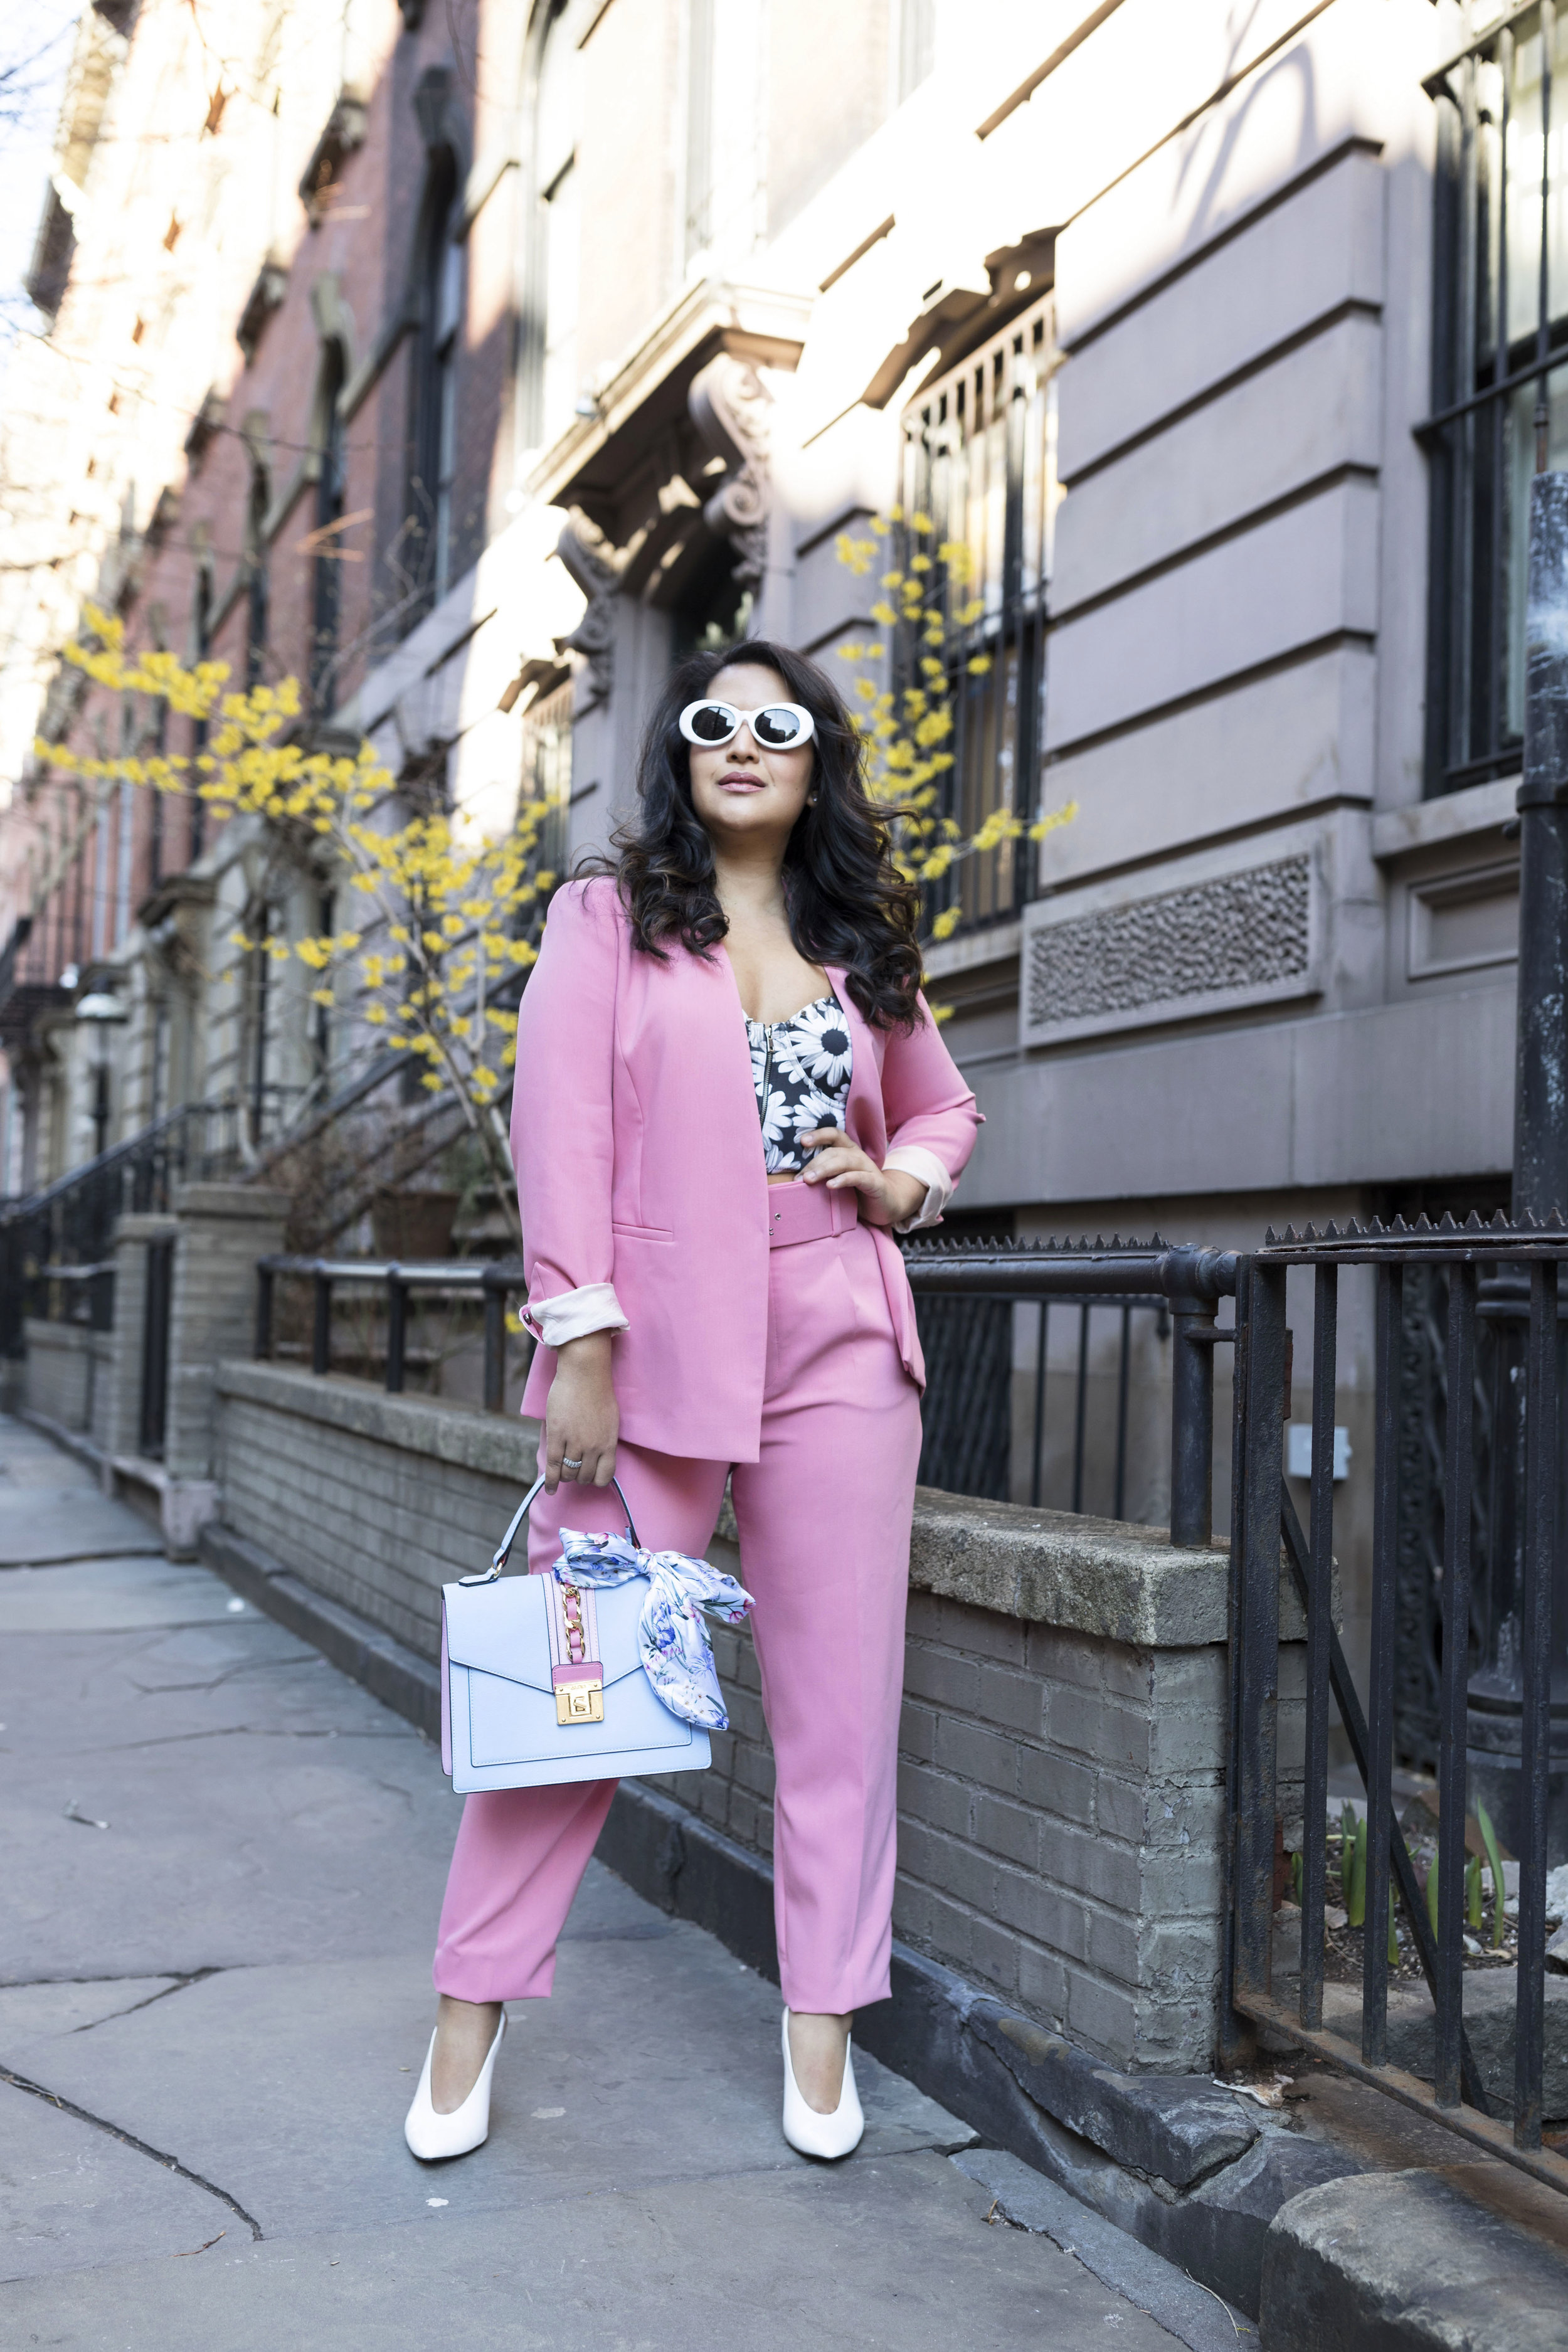 Pant Suit Spring Outfit Trend- Pink Pant Suit